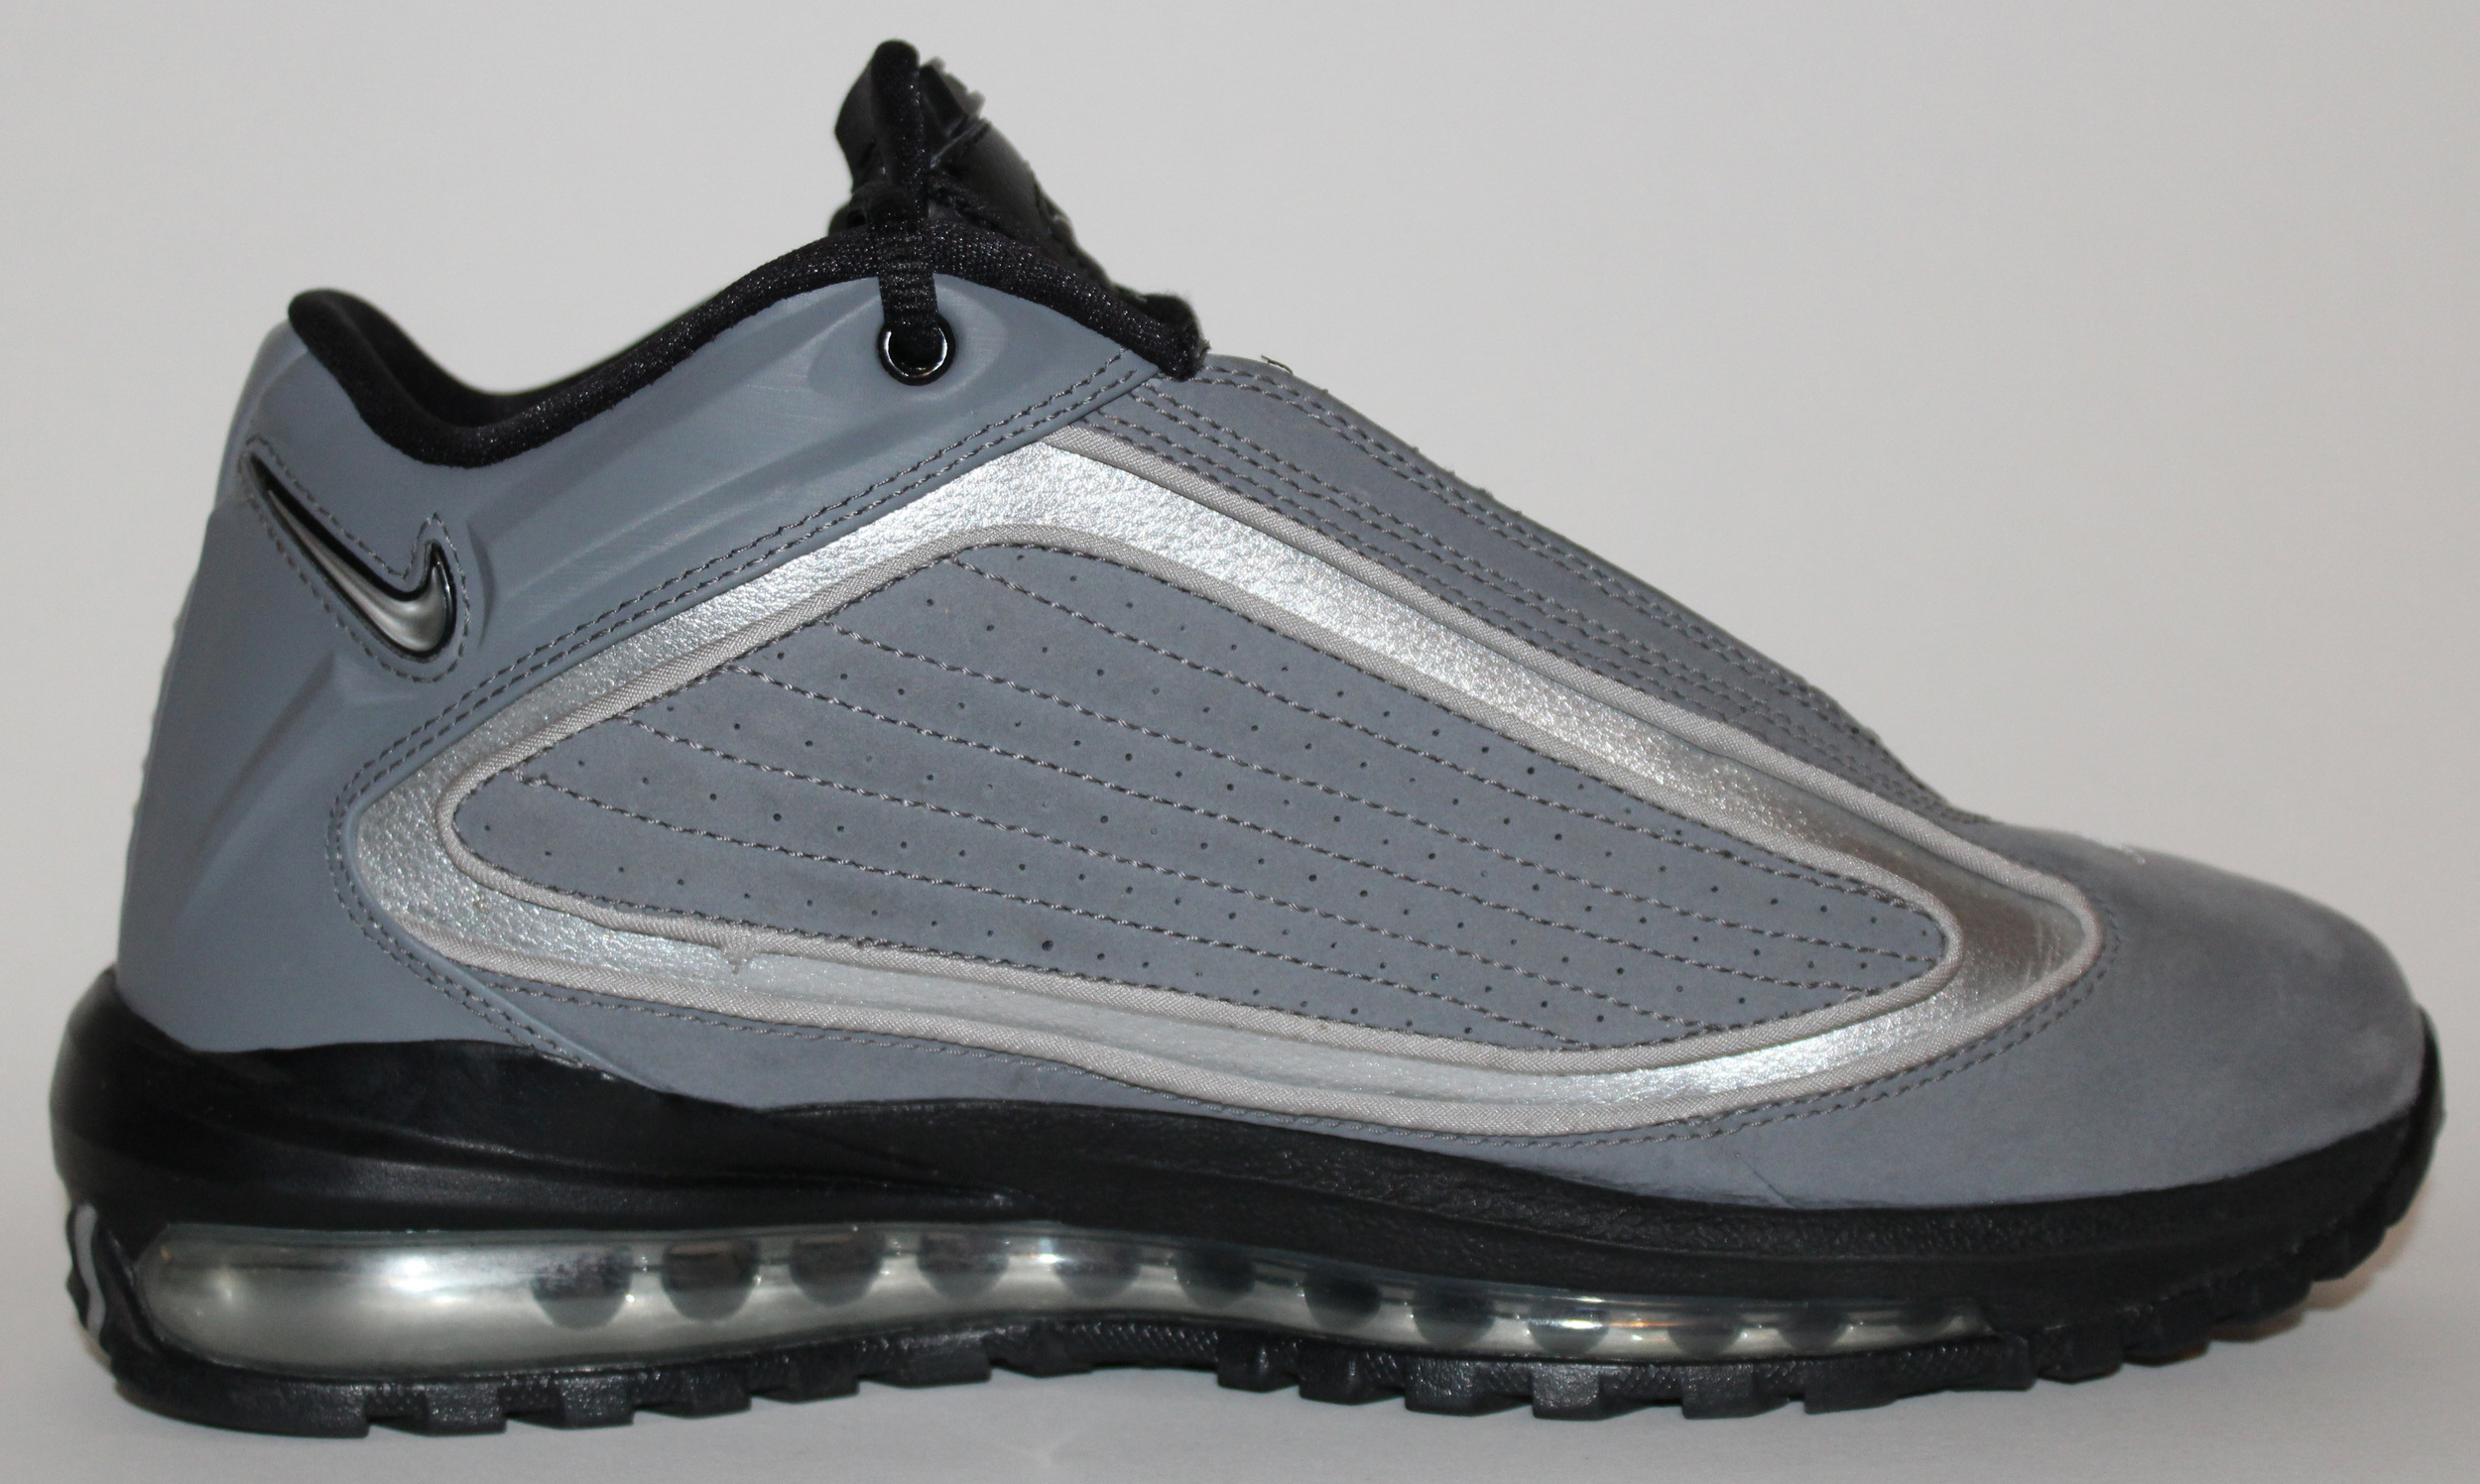 Nike Air Griffey Max GD II Cool GreyBlackSilver (Size 9.5) — Roots